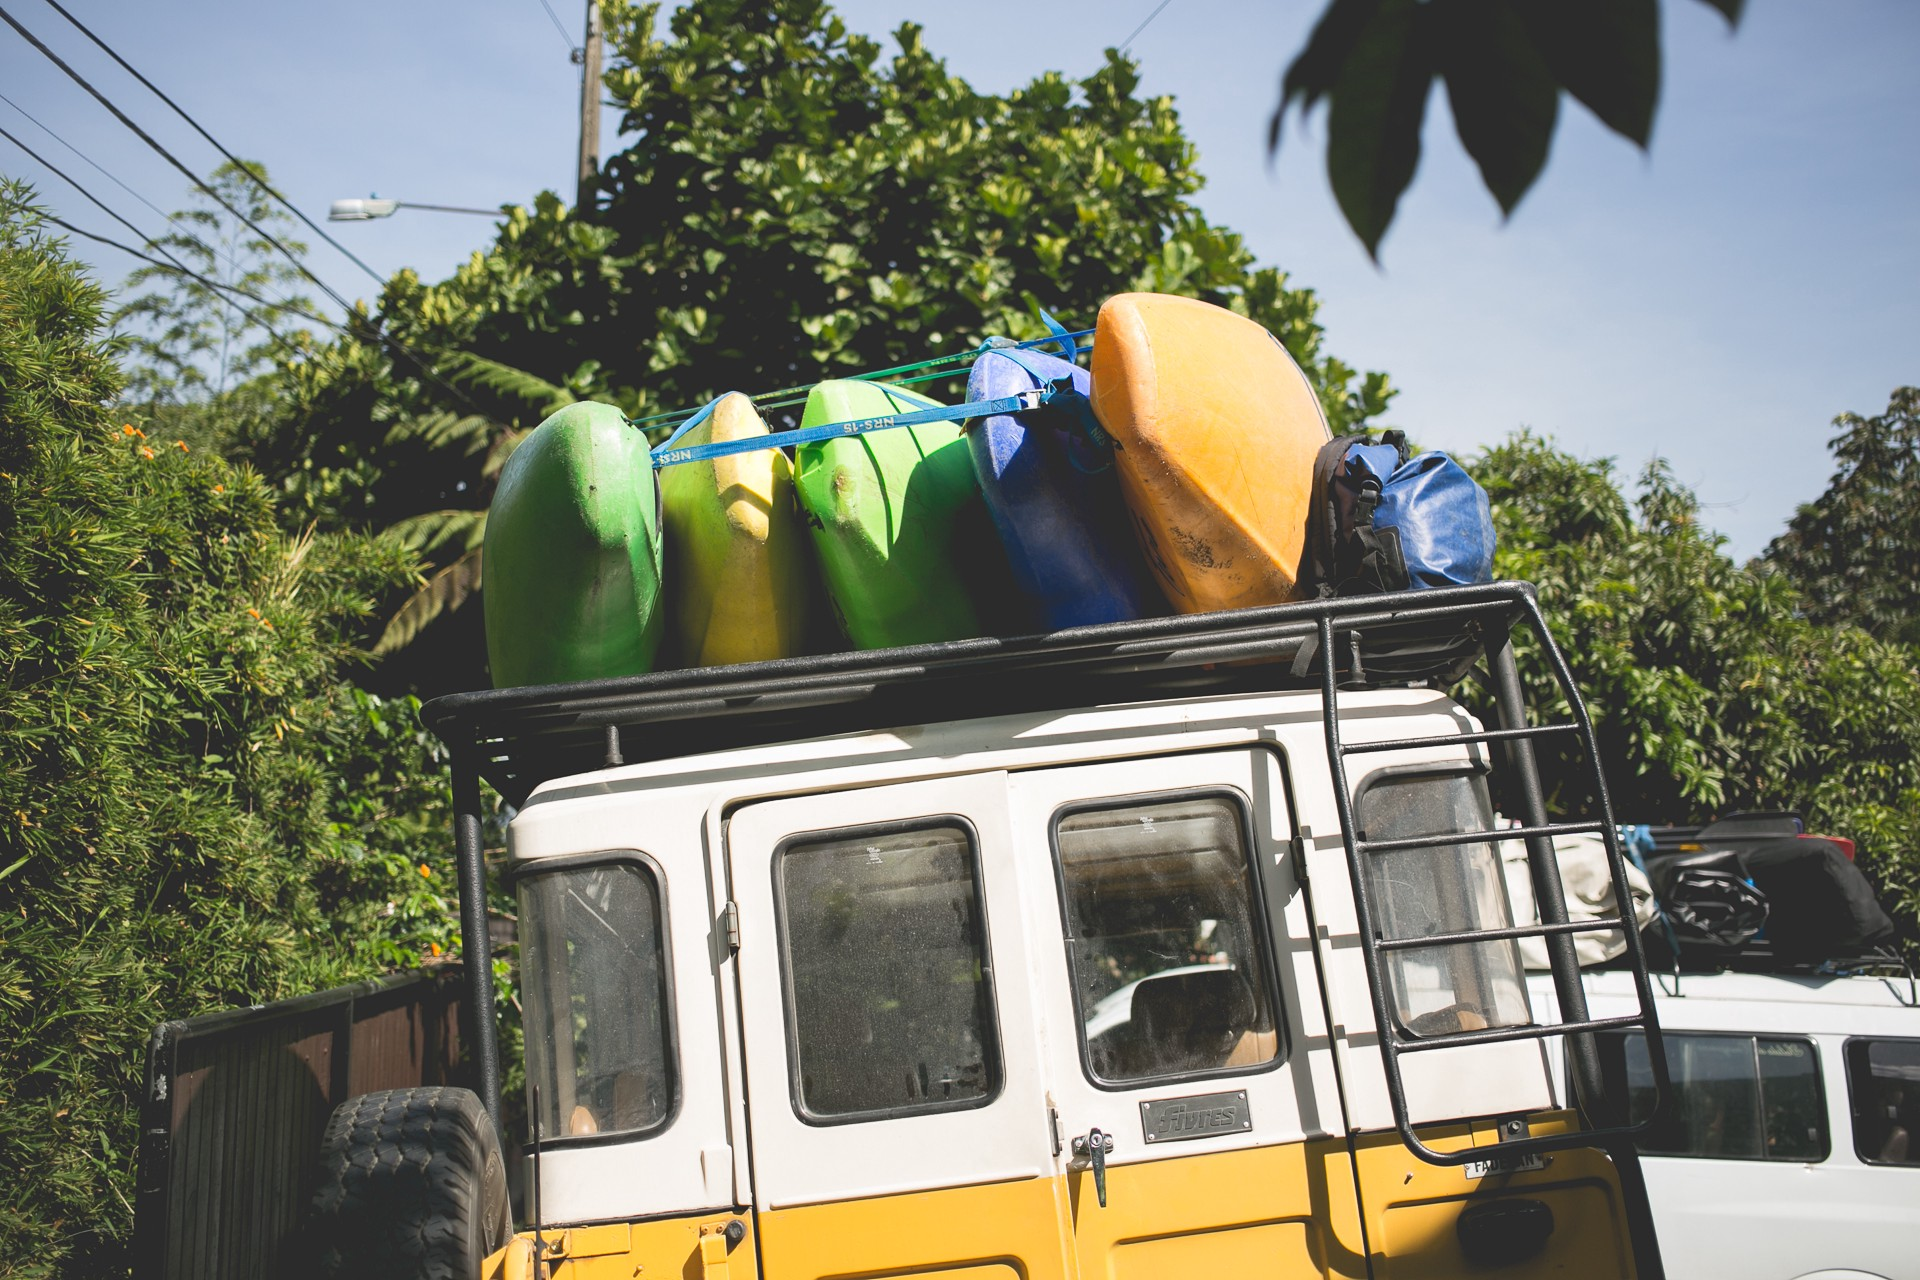 Kayaks and gear loaded on a yellow jeep in Medellin